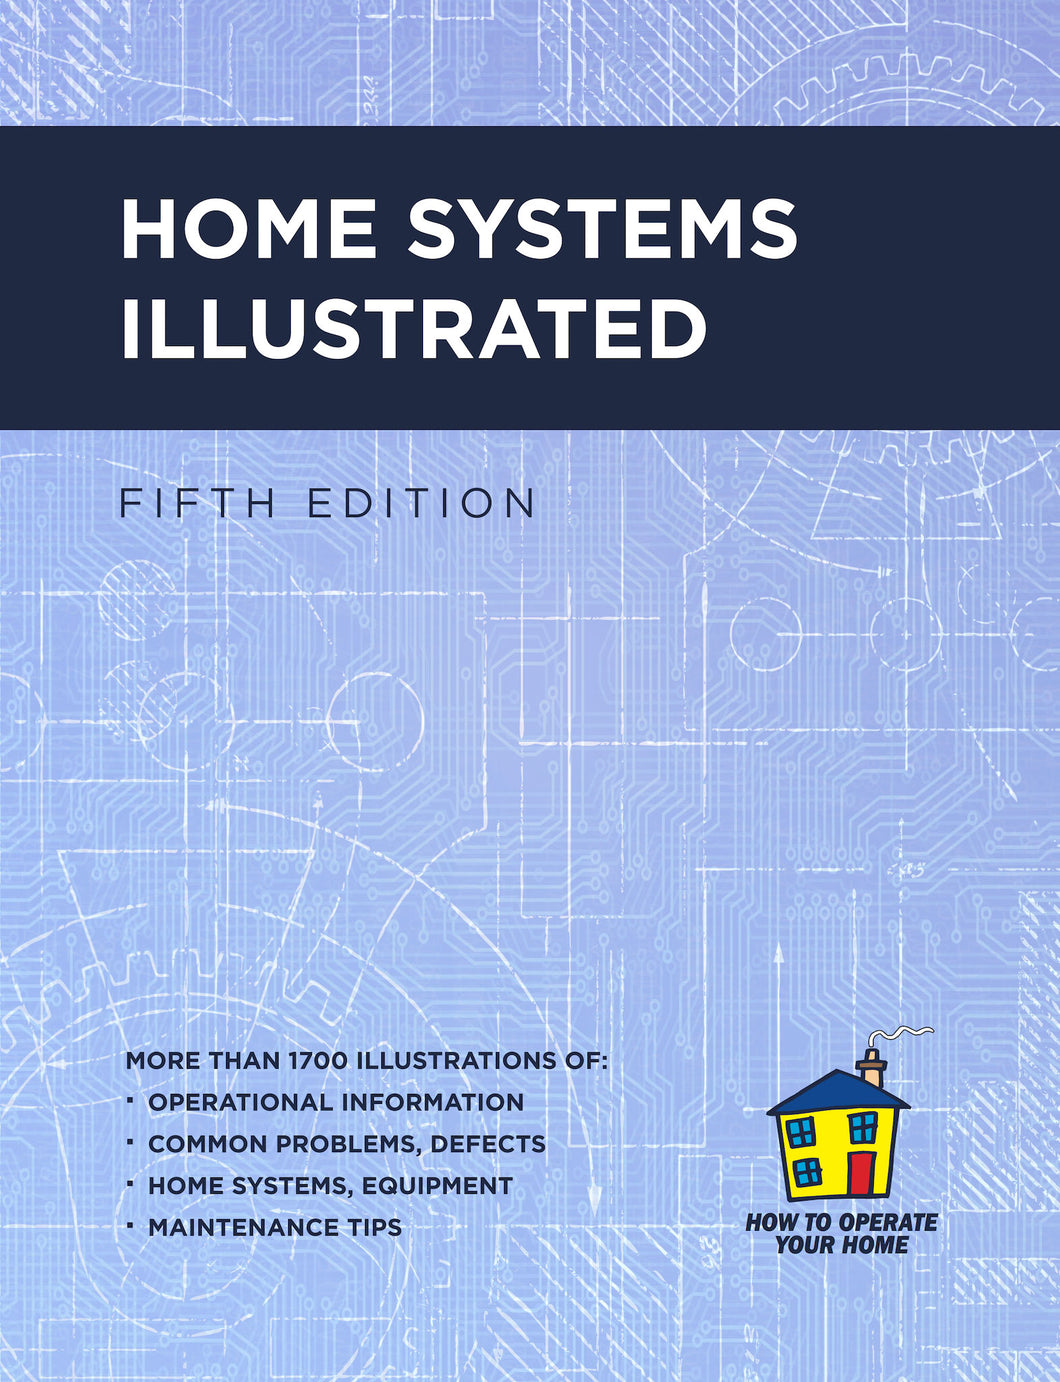 Home Systems Illustrated - Line Art Collection (Instant Download)